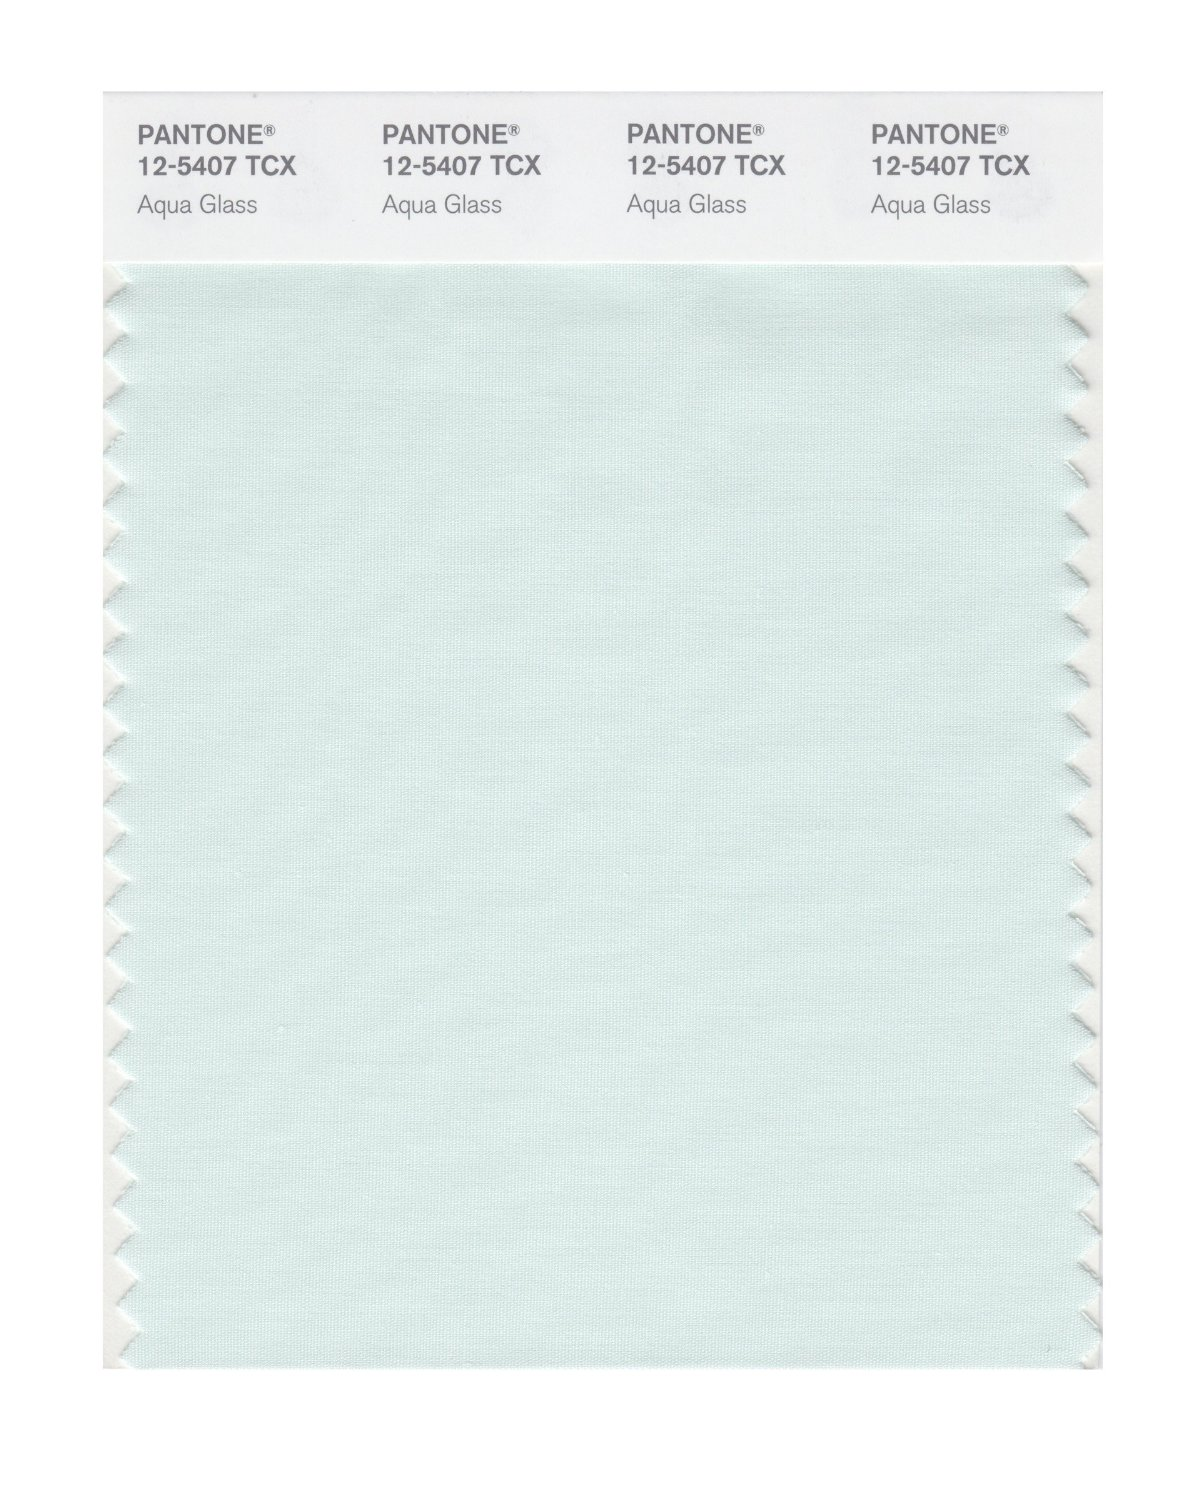 Pantone Smart Swatch 12-5407 Aqua Glass